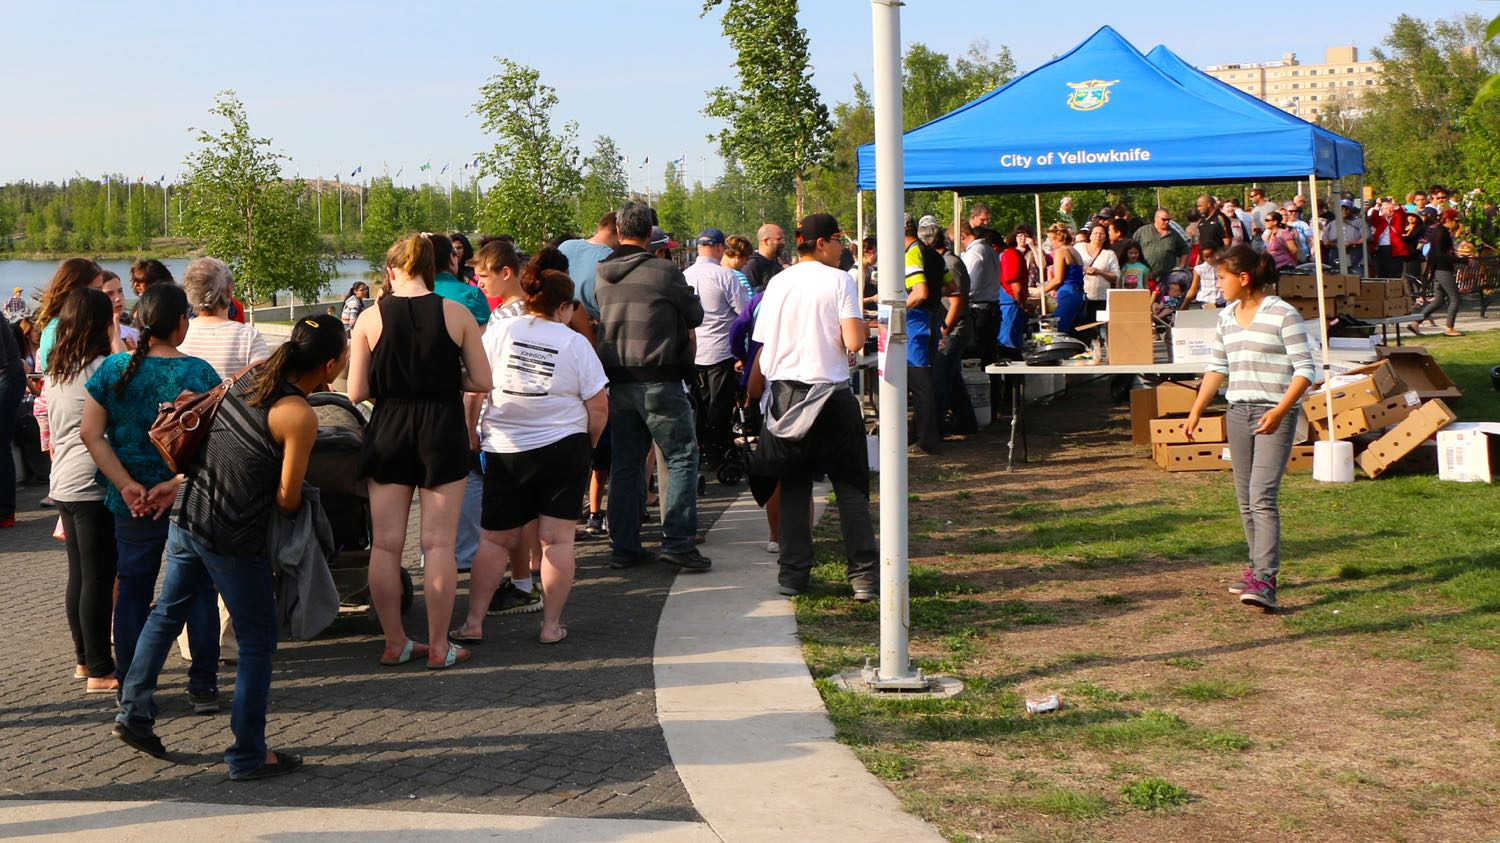 City of Yellowknife community barbecue